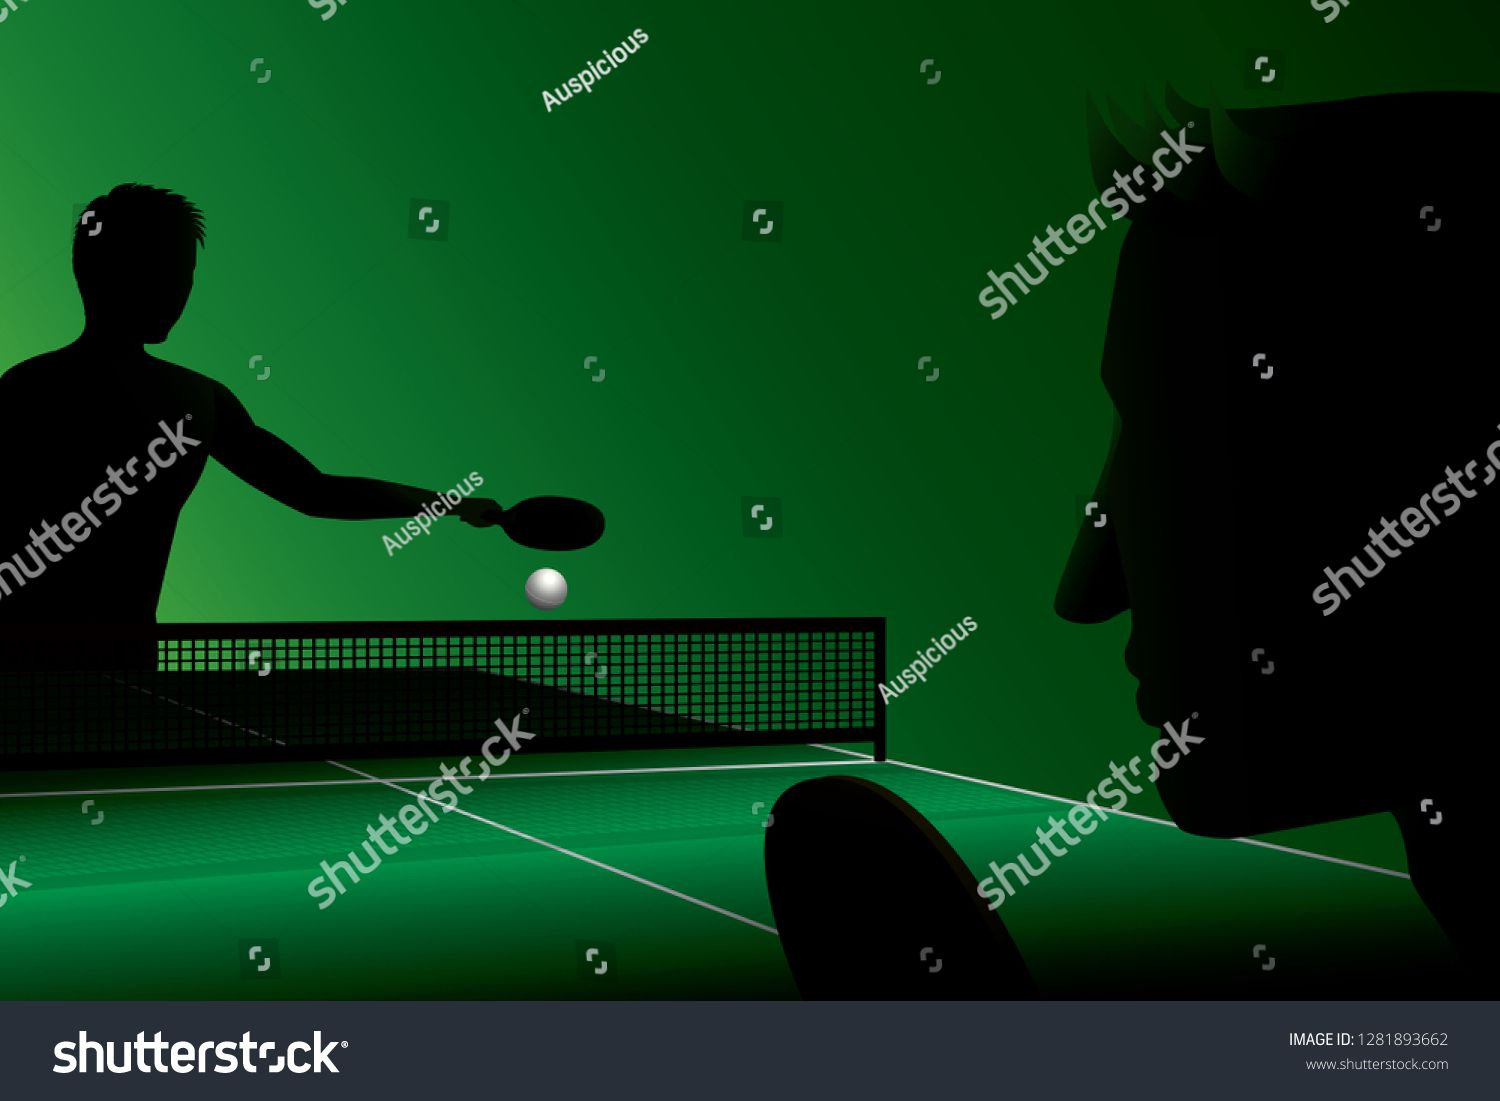 Vector Silhouette Of Table Tennis Player Athlete Sport Game Competition Ad Ad Table Tennis Vector Sil With Images Table Tennis Player Competition Games Table Tennis